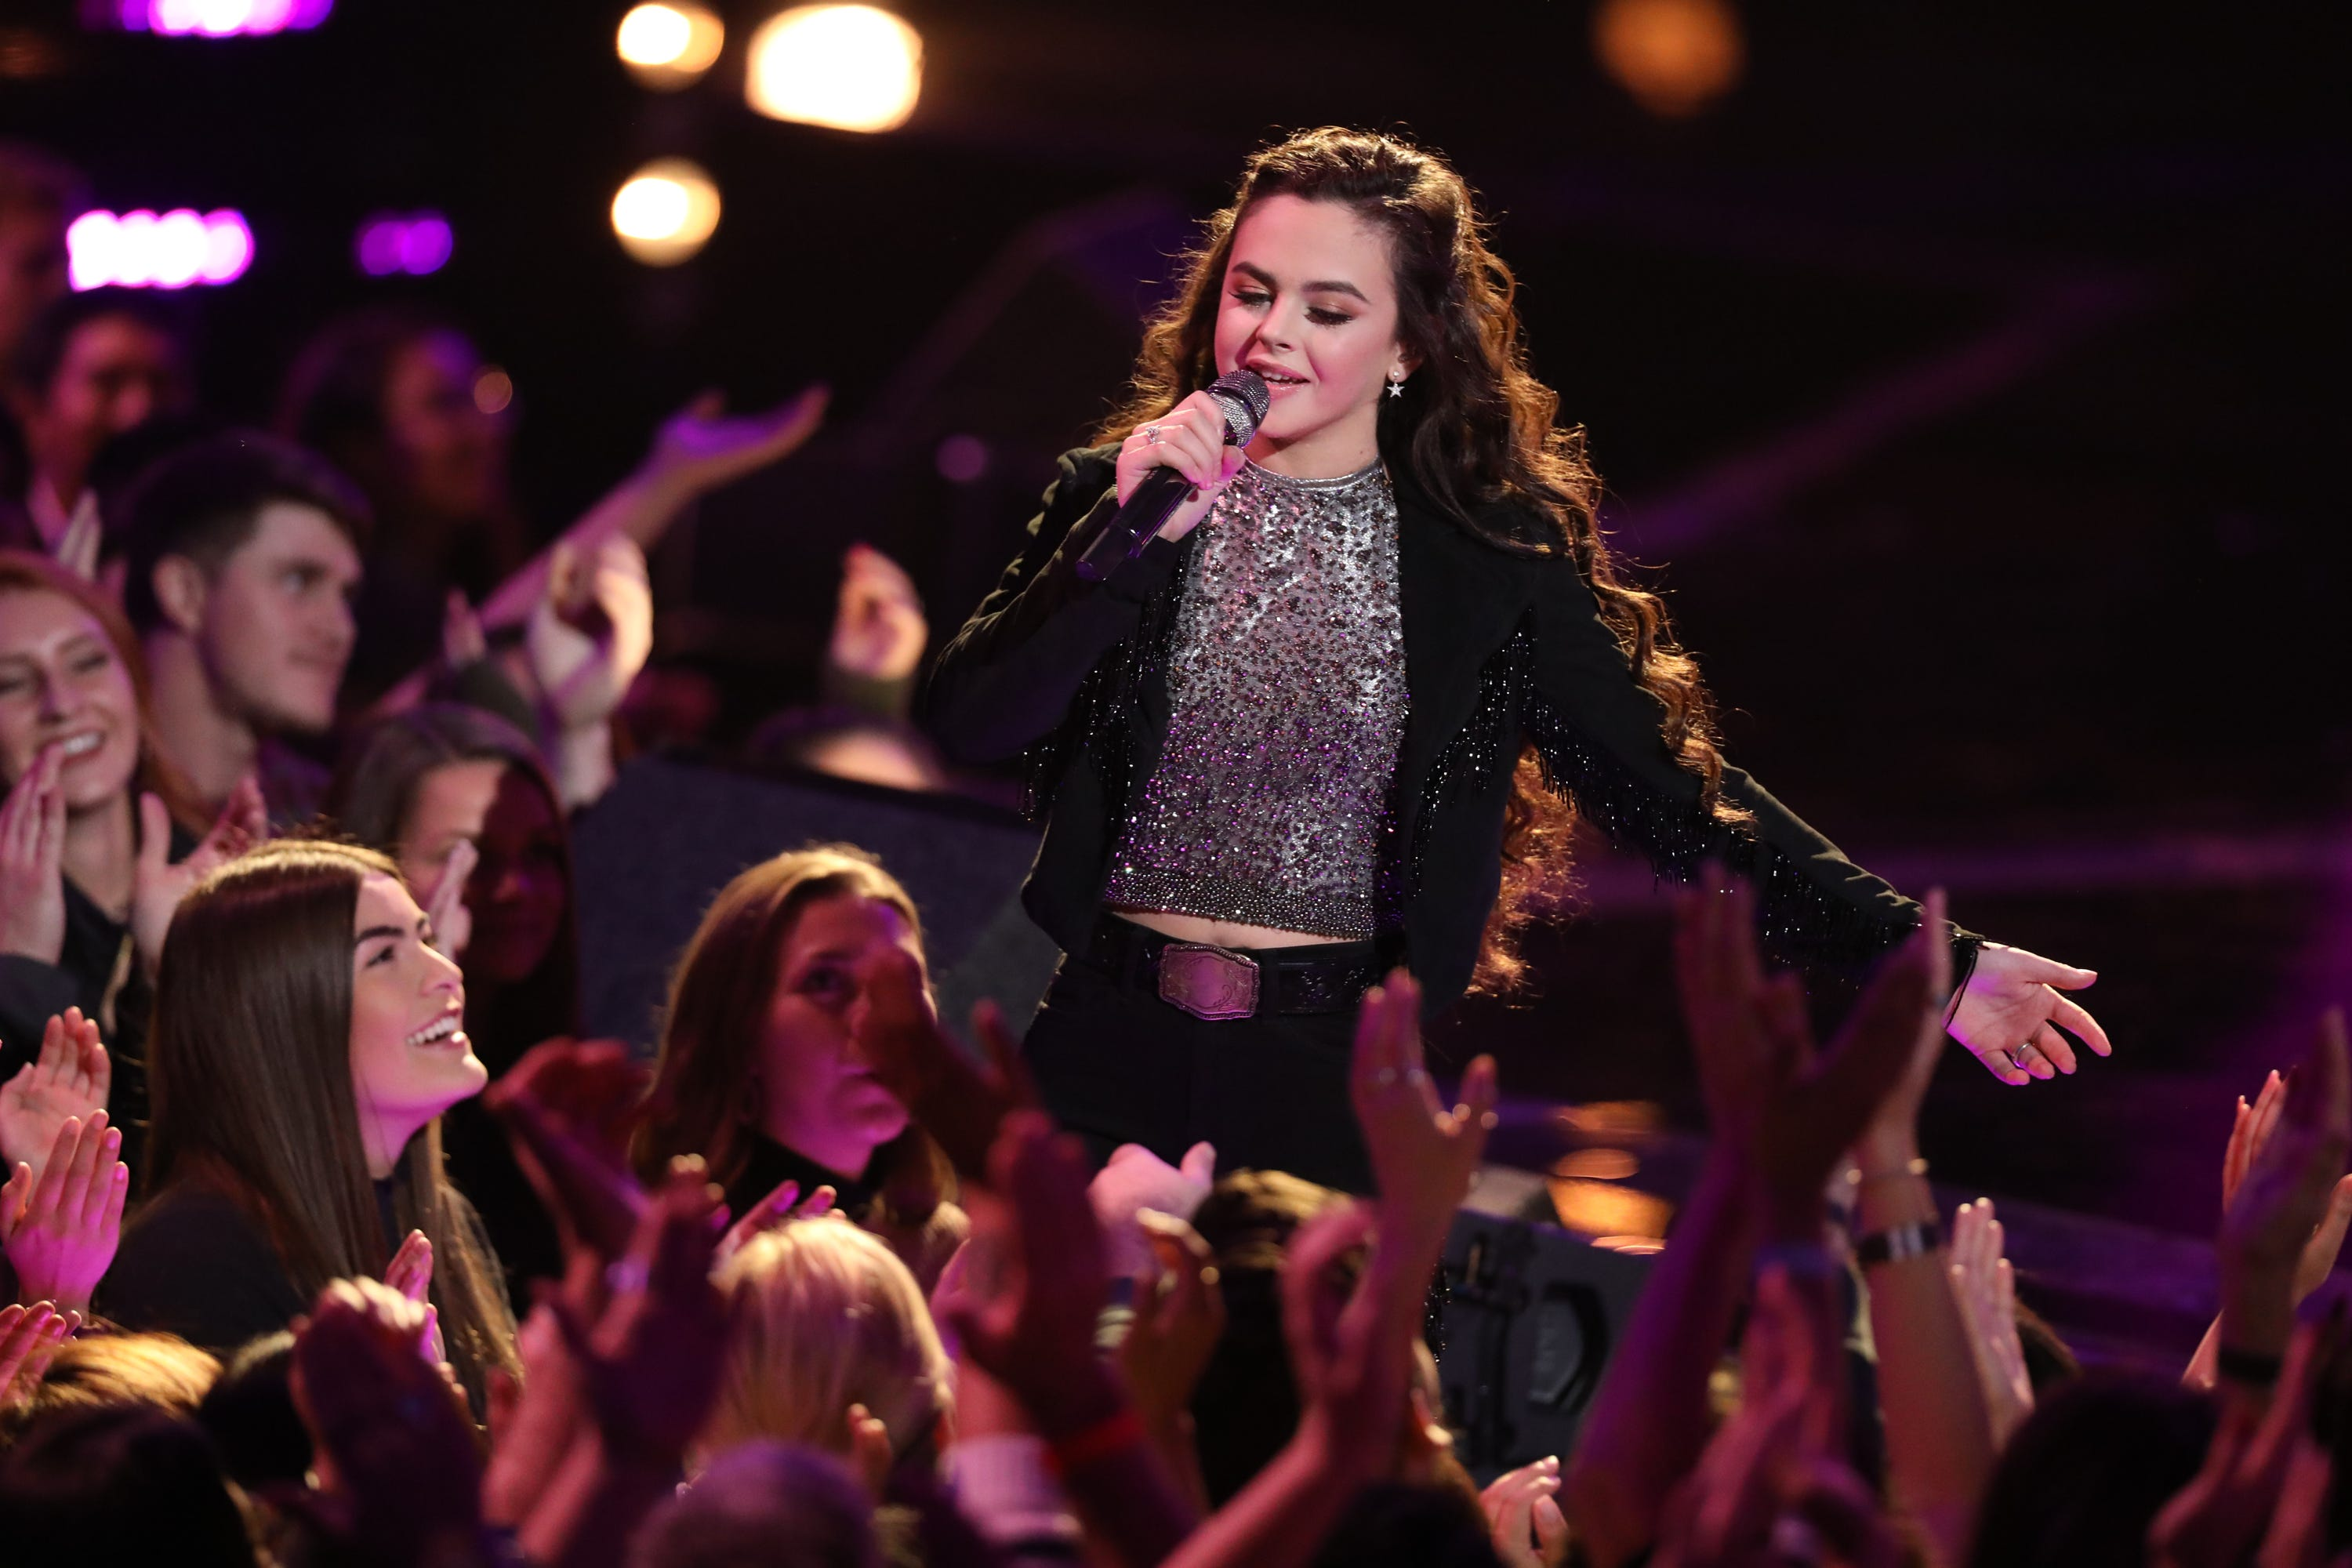 'The Voice' crowns Season 15 champion